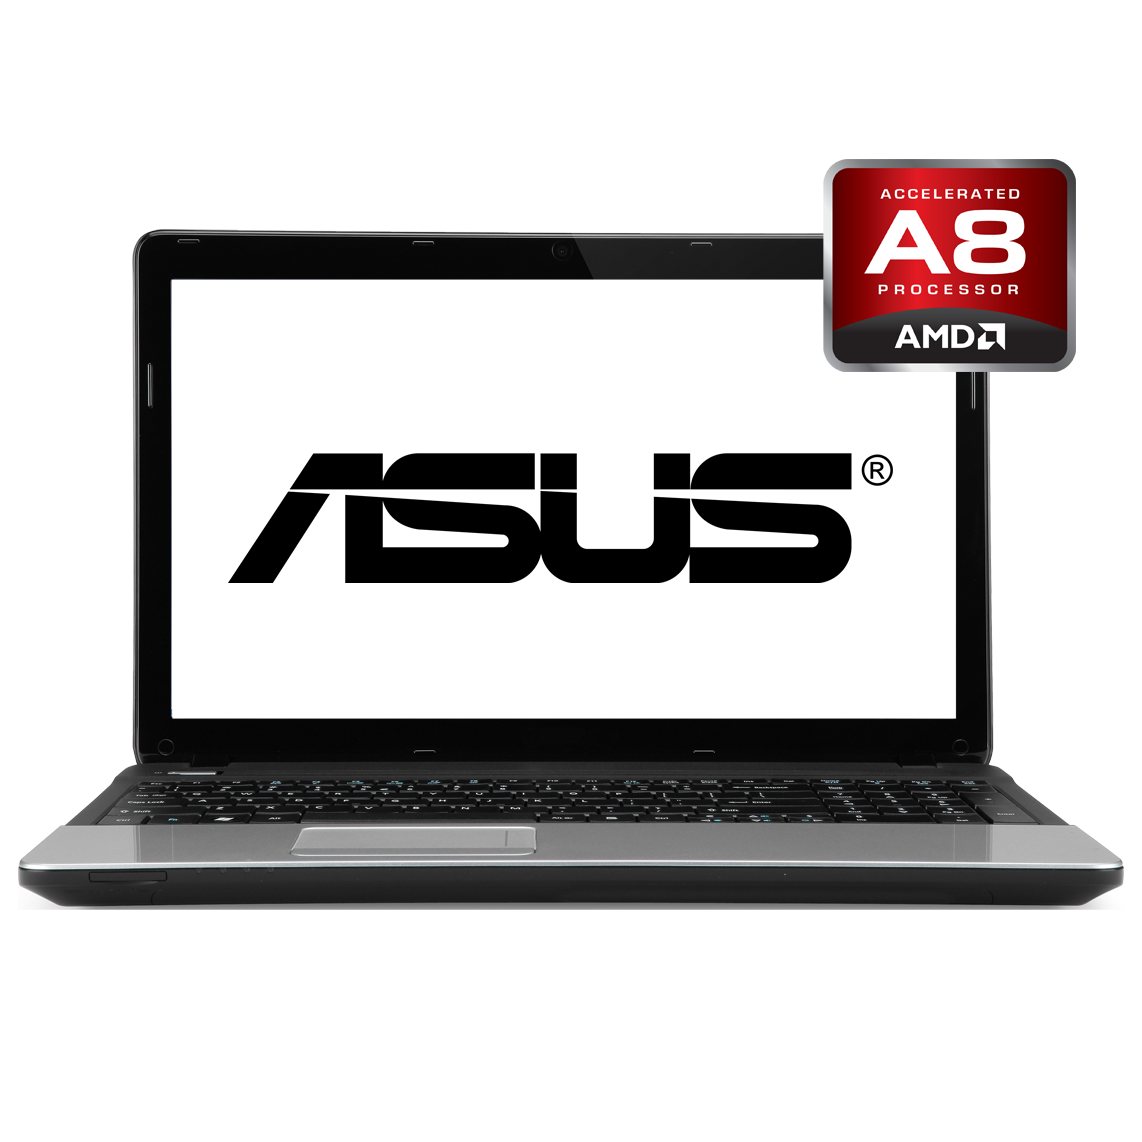 ASUS - 16 inch AMD A8